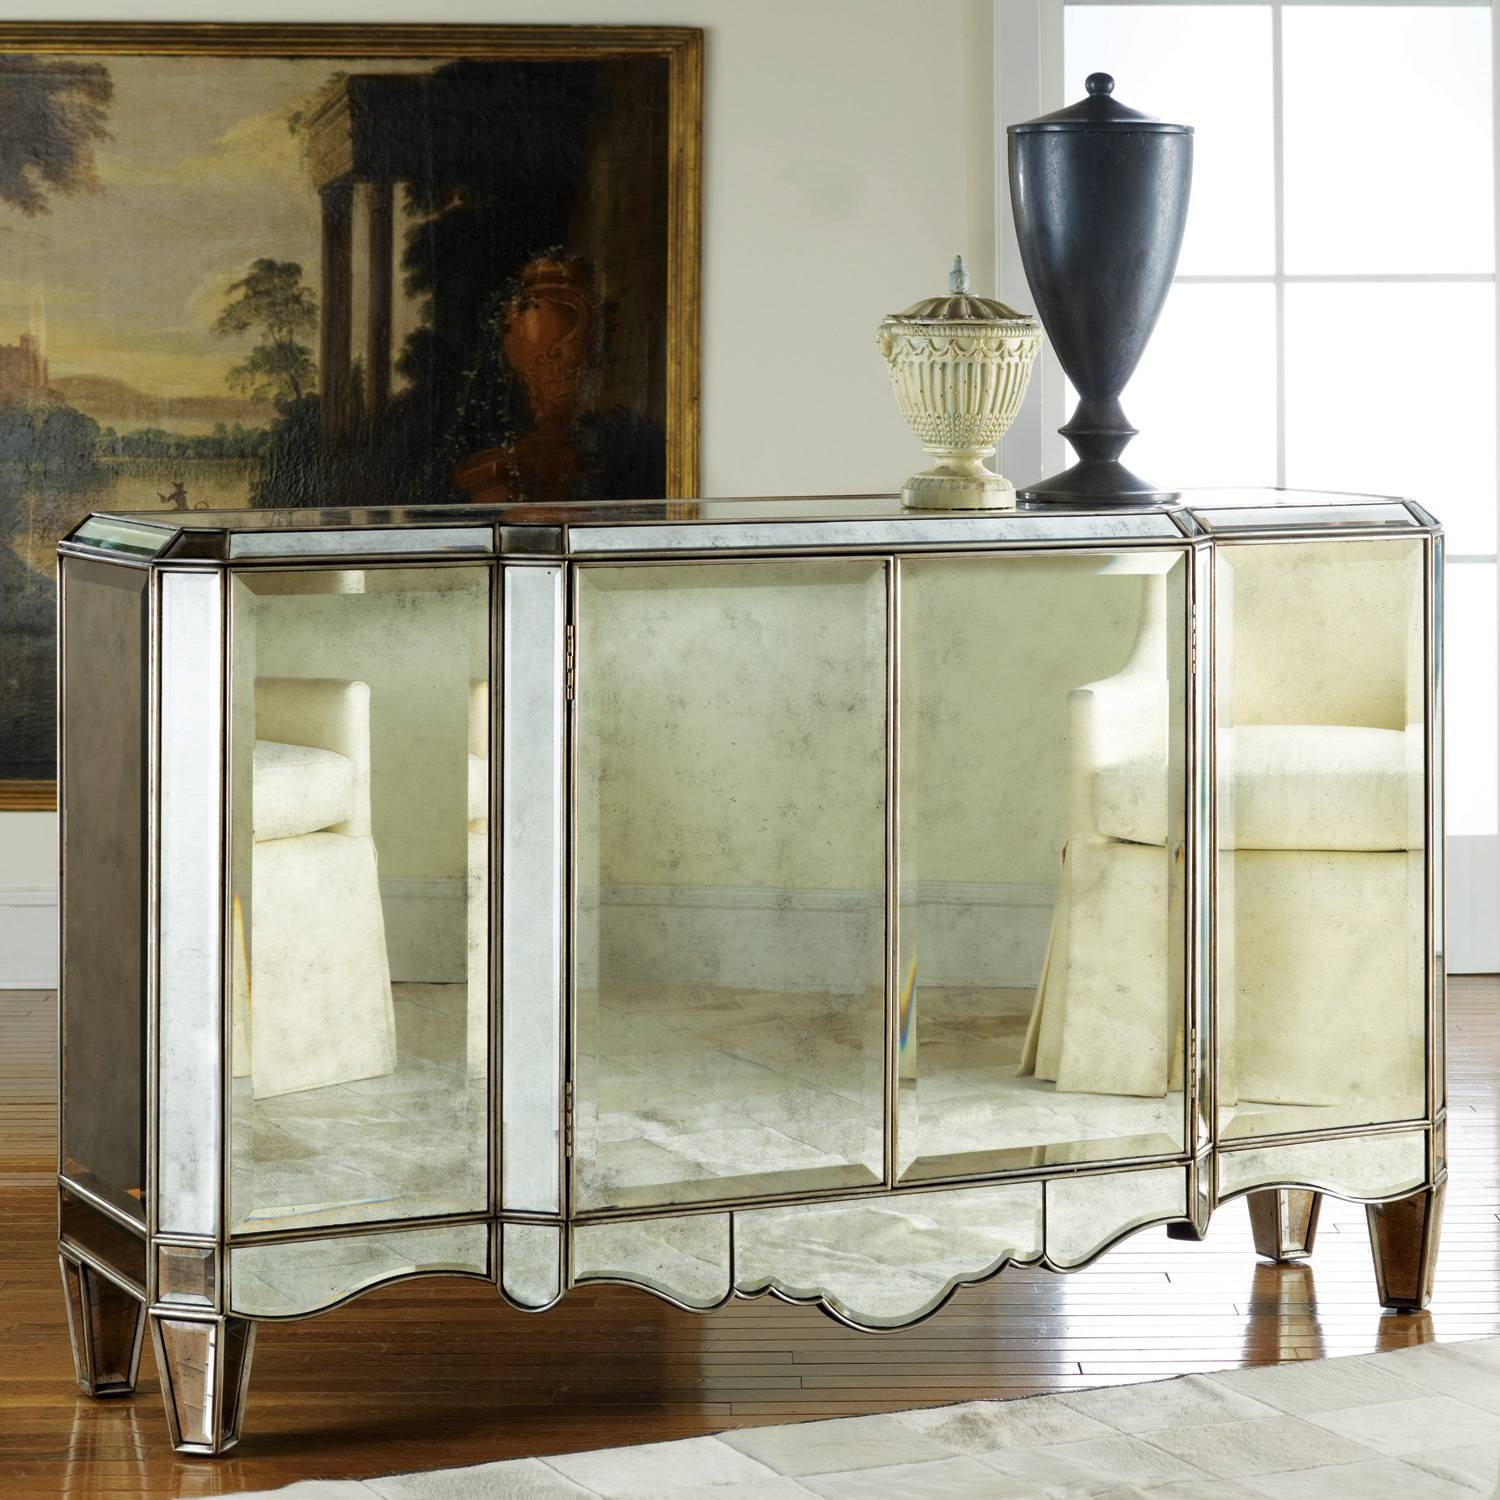 Modern History Home Mirrored Sideboard with White Mirrored Sideboards (Image 13 of 30)